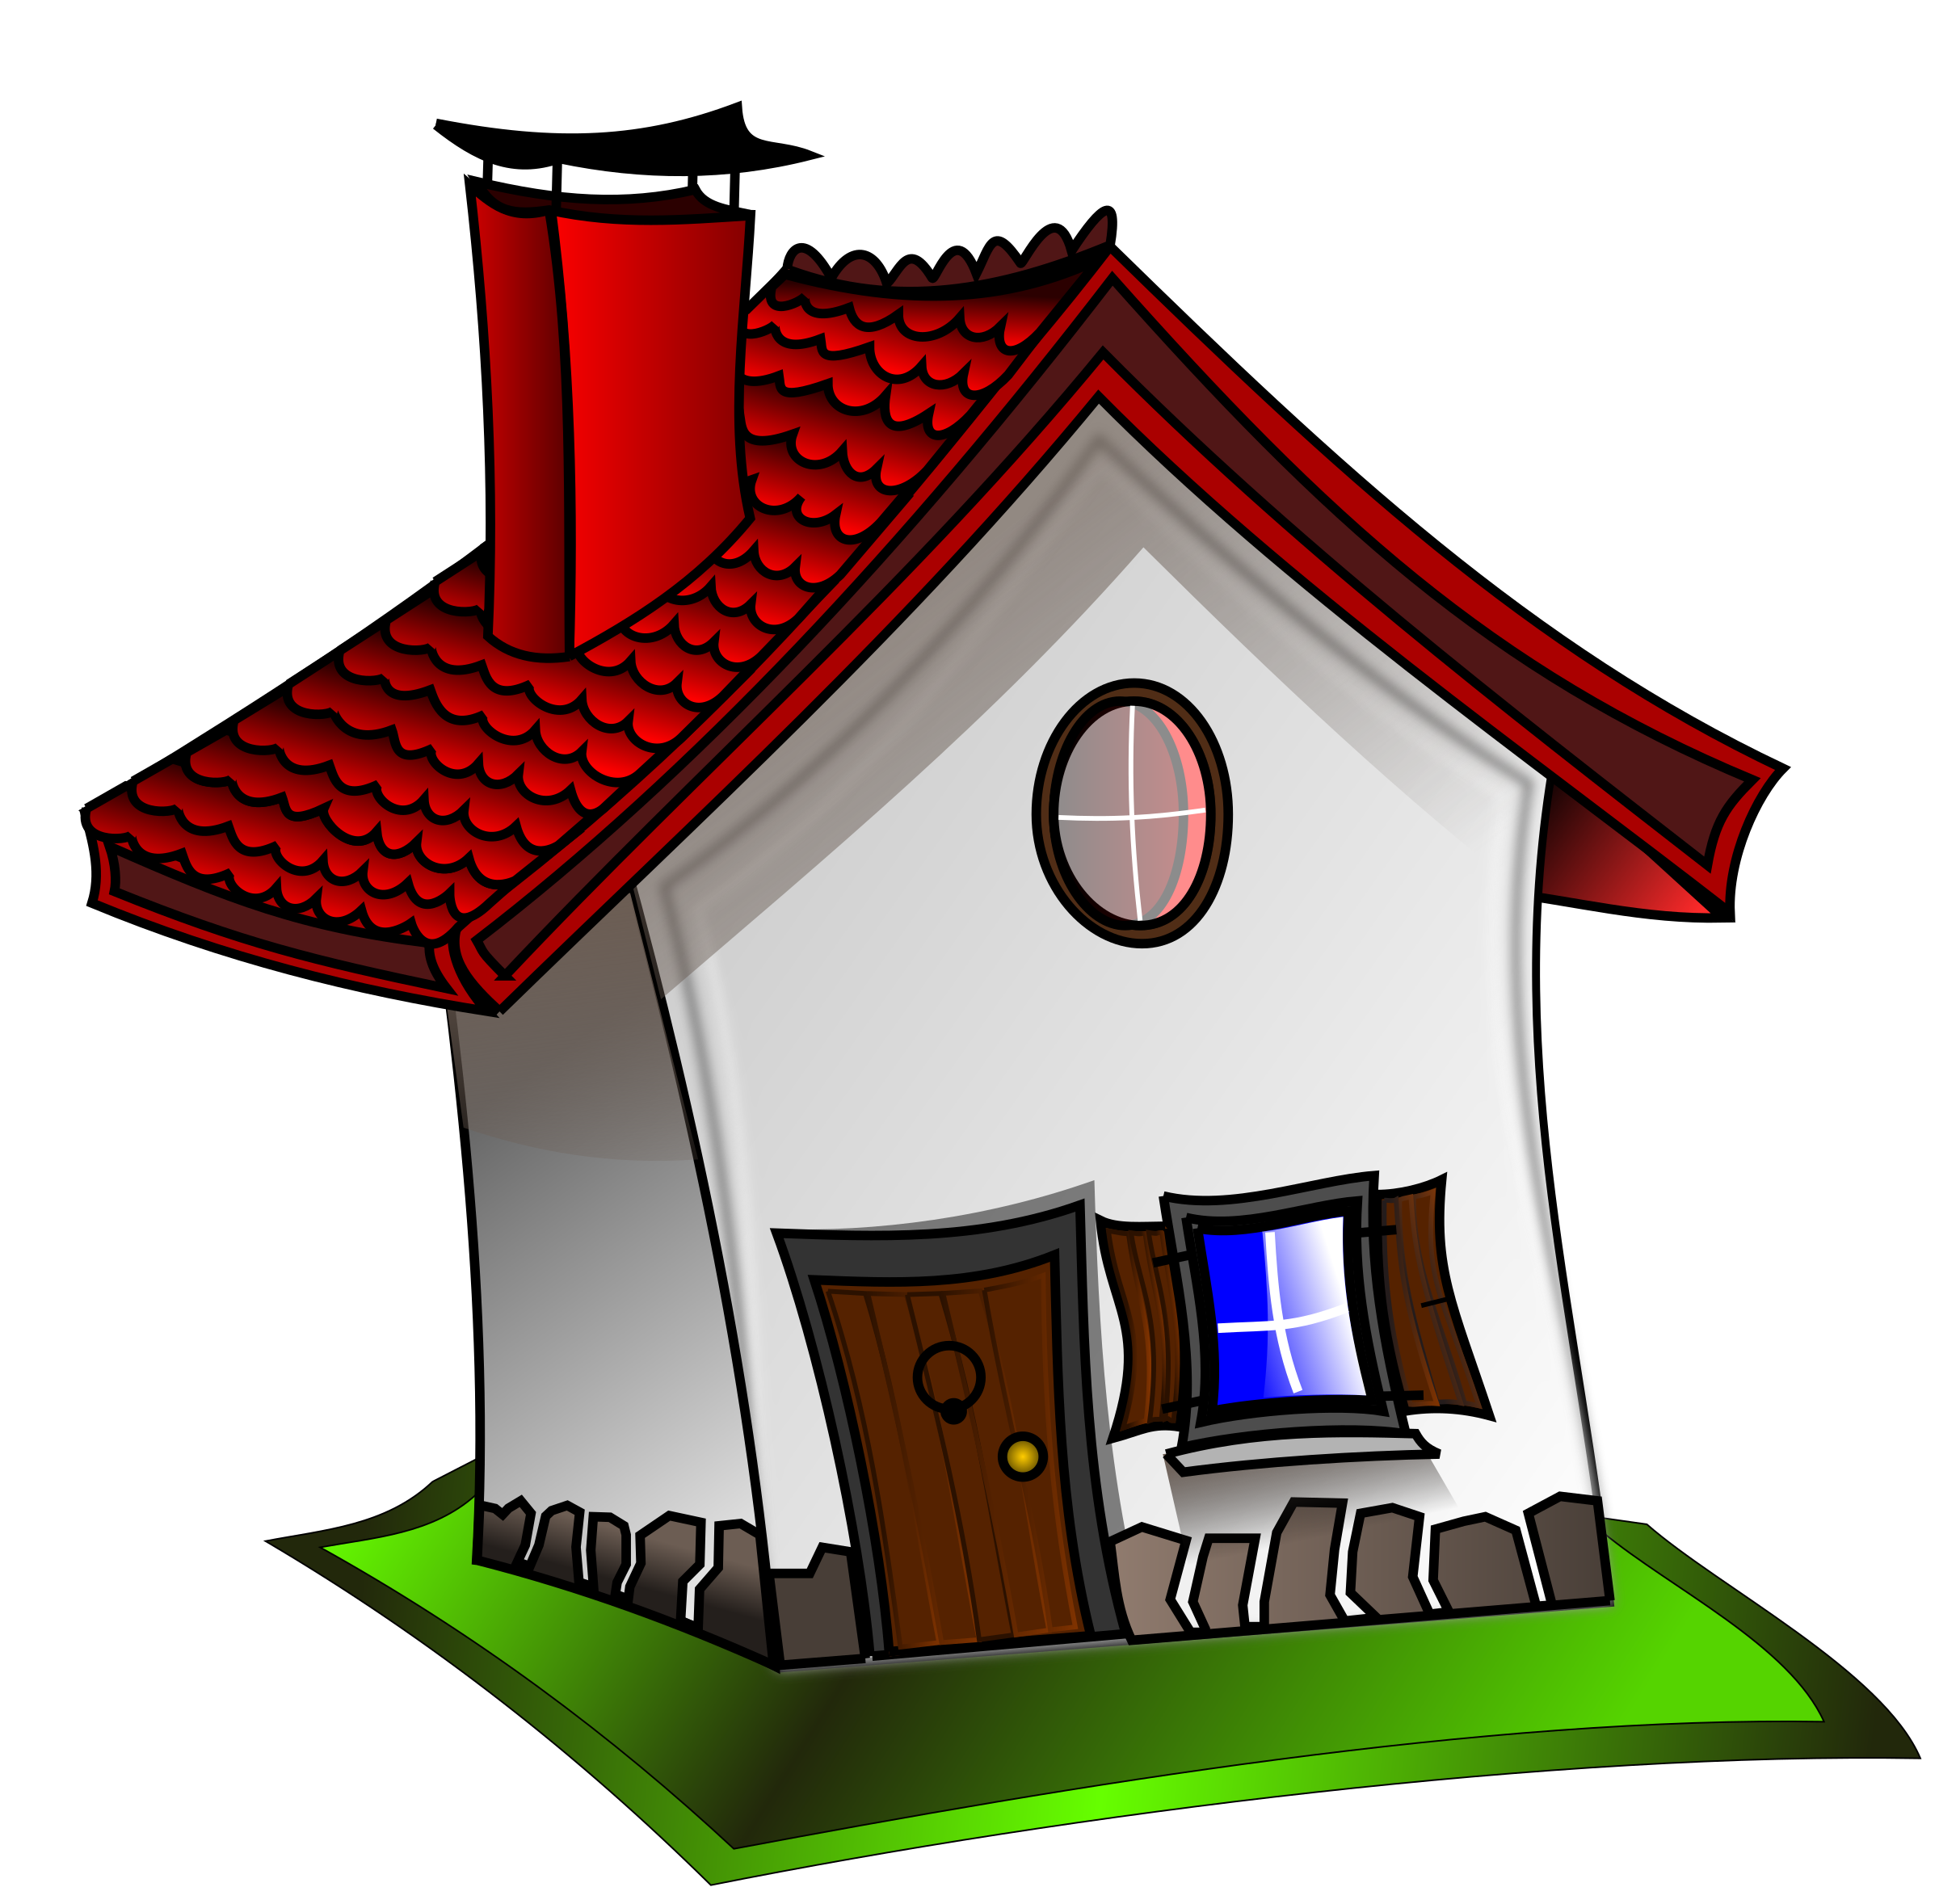 Home big image png. Cottage clipart pretty house